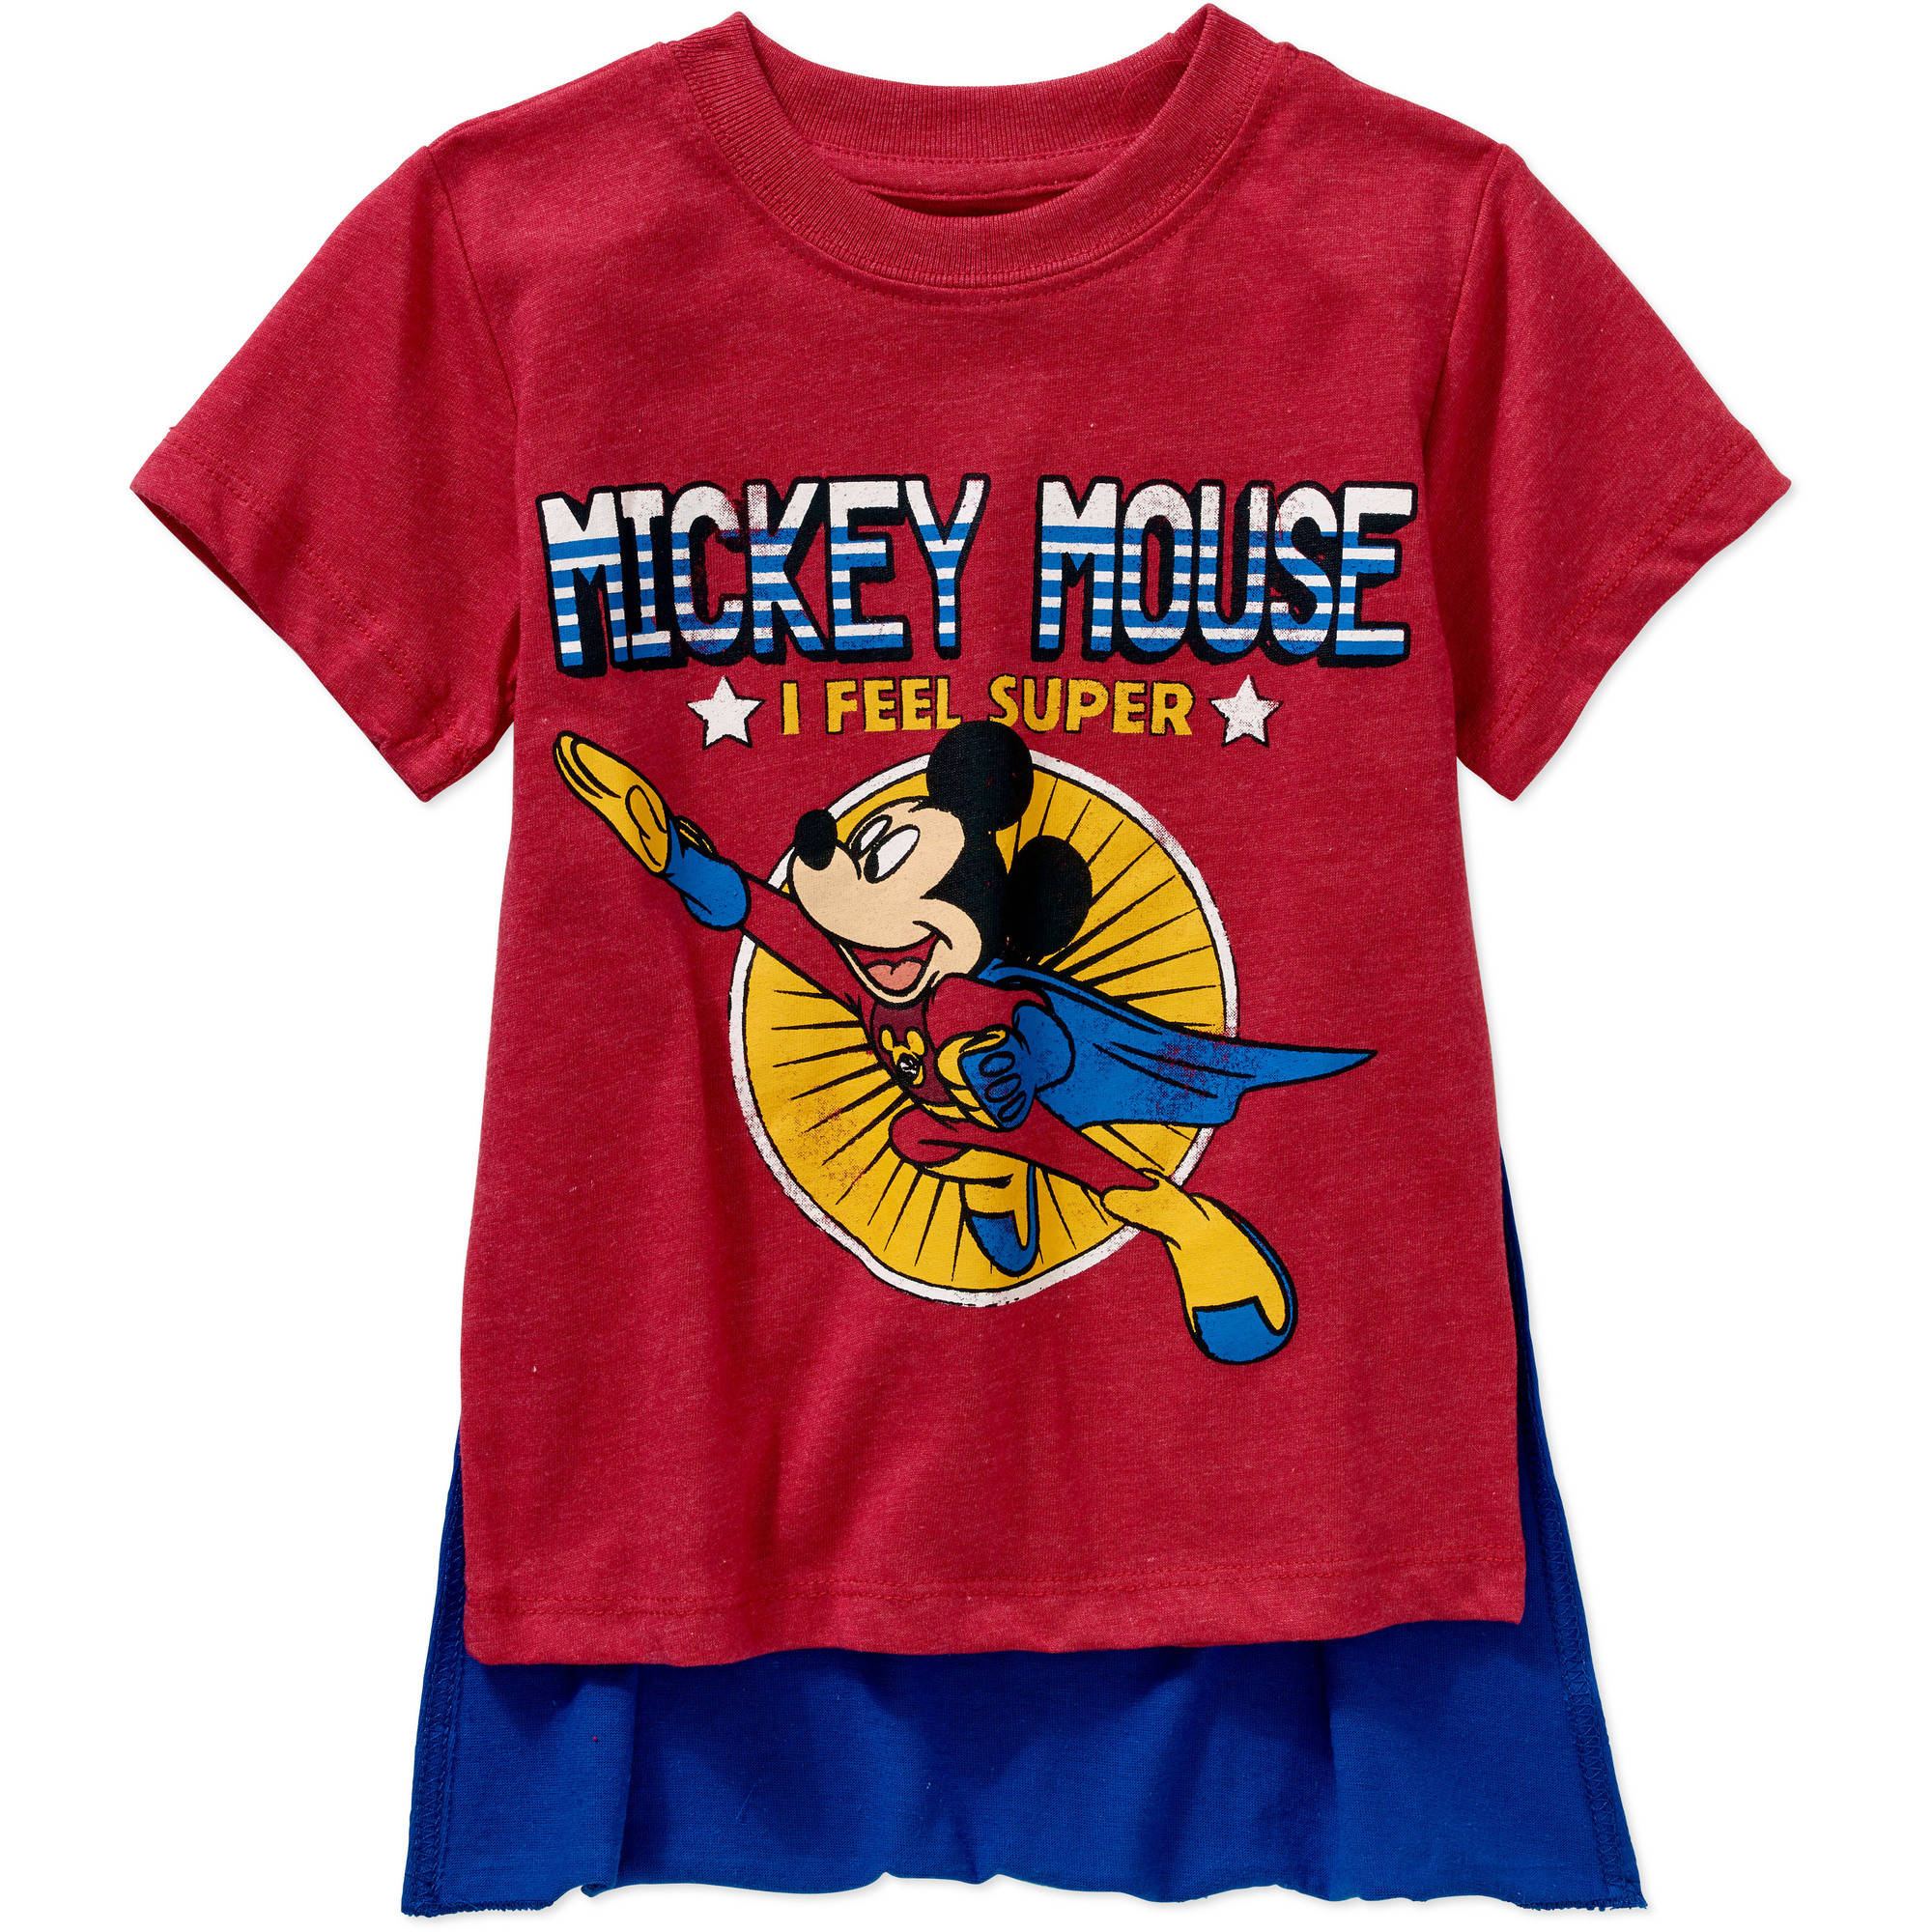 Disney Toddler Boy Short Sleeve Caped Tee